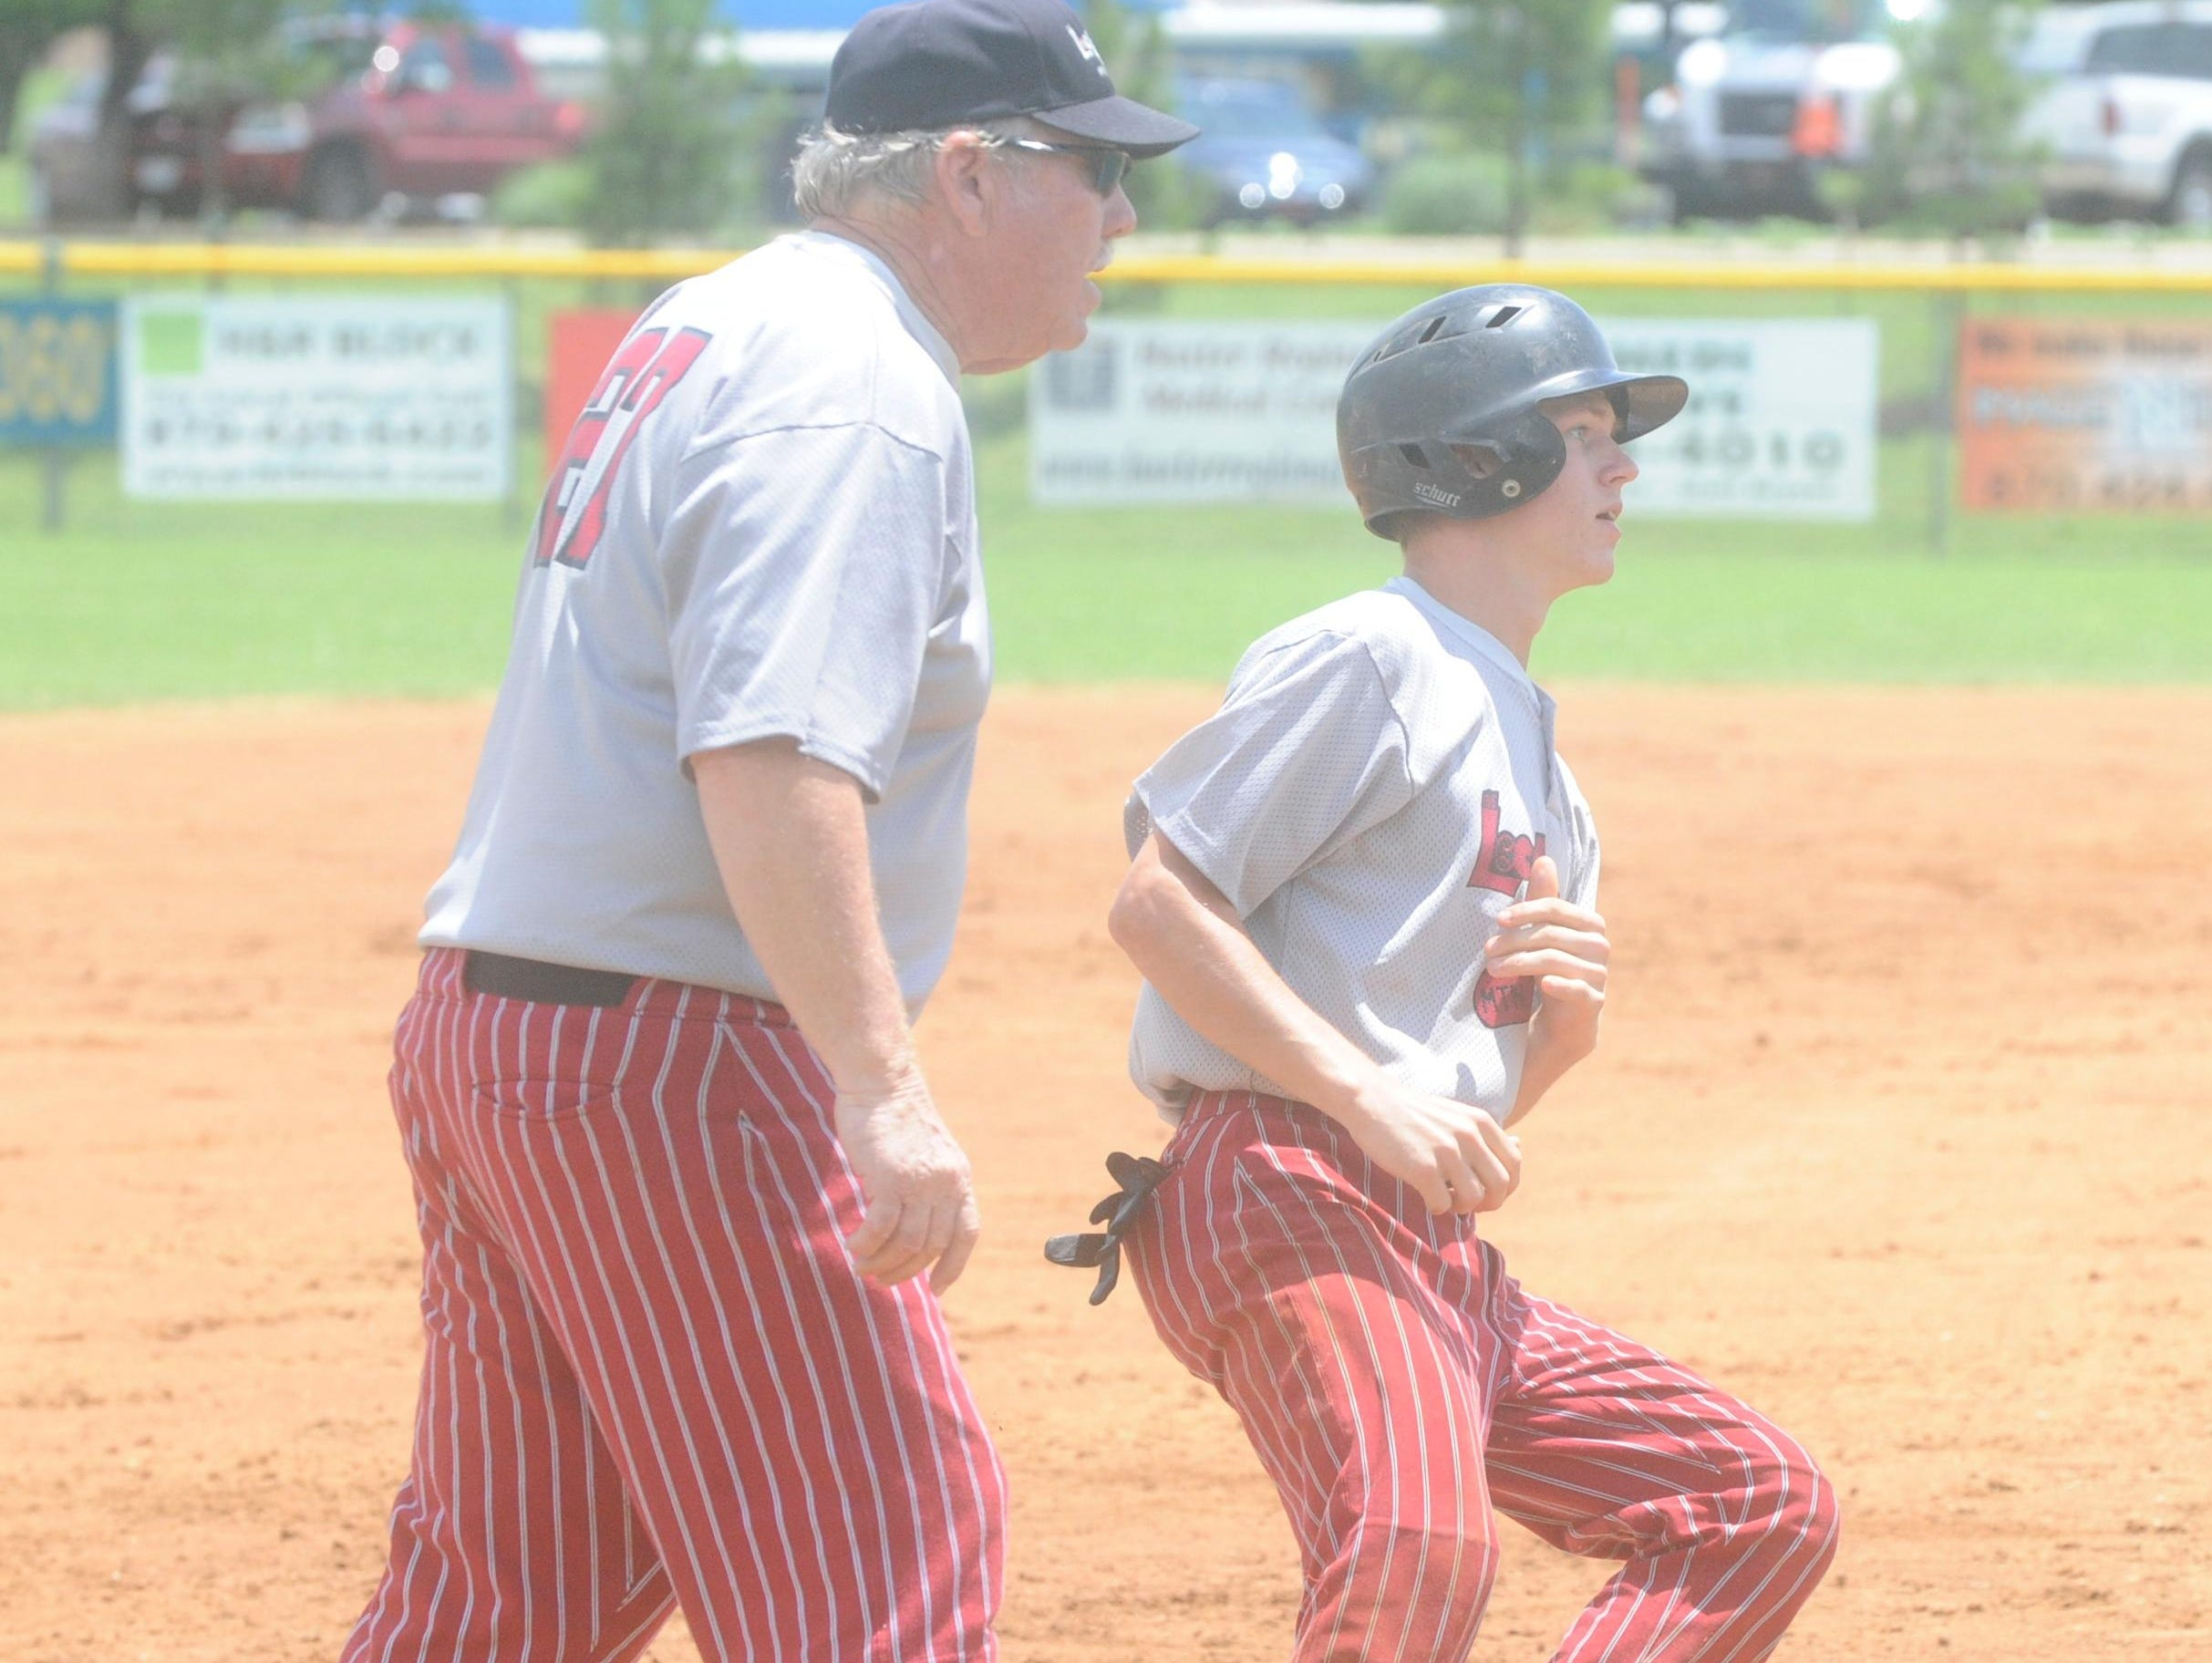 Mountain Home's Cody McCormack is held up at third base by Lockeroom head coach Lester White during a Twin Lakes Classic game earlier this season at Cooper Park.